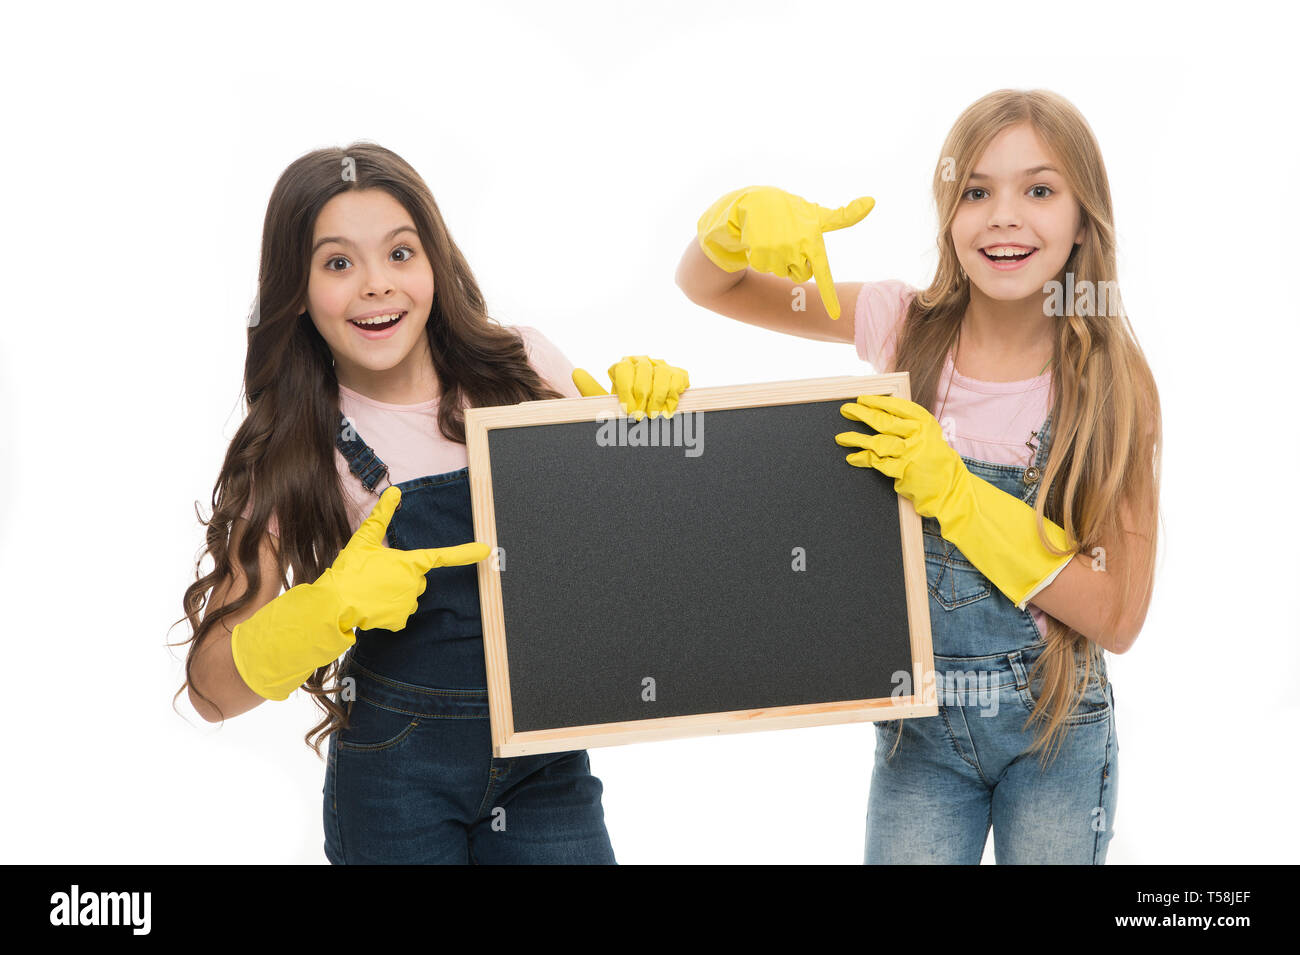 A little help for keeping things tidy. Adorable tidy schoolgirls in rubber gloves pointing at tidy blackboard. Primary school children keeping their school supplies clean and tidy, copy space. - Stock Image